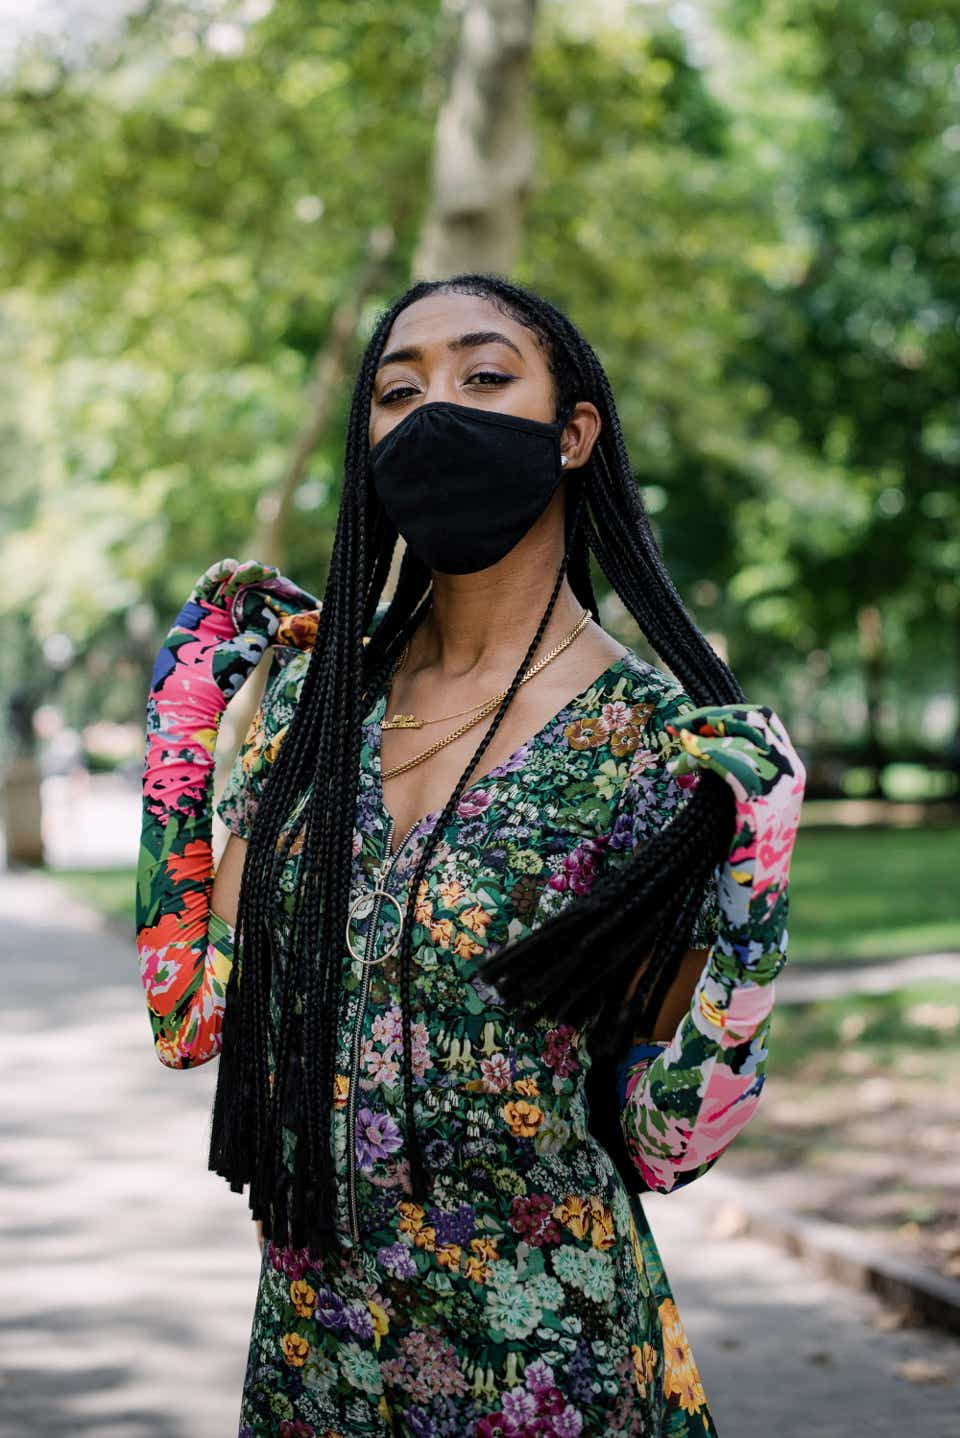 This is a close-up photo of Kassie showing off her braids and her floral elbow length gloves. She's also wearing a black face mask and a floral V-neck jumpsuit.